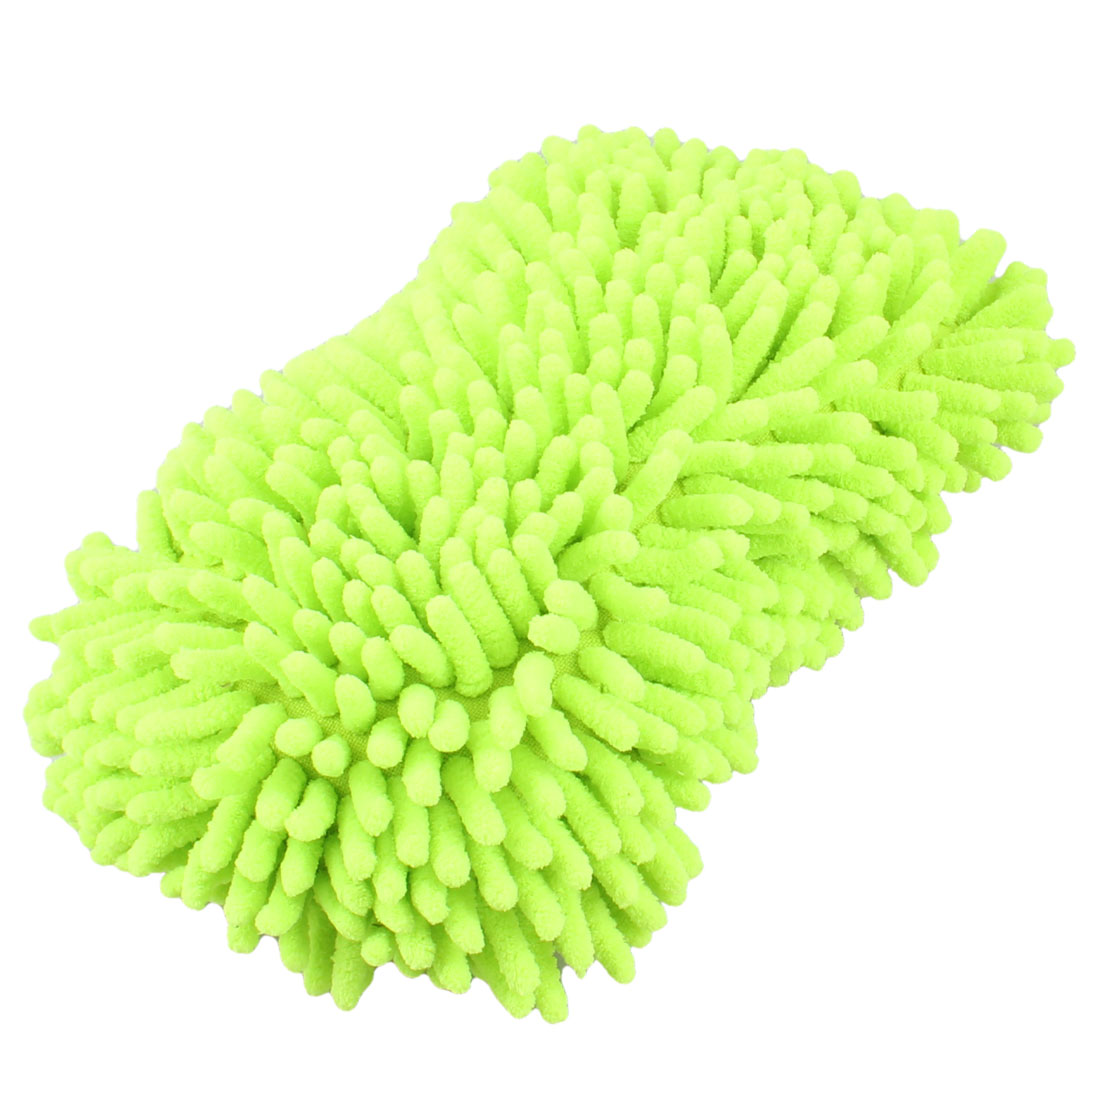 UXCELL Cleaning Cleaner Hand Strap Yellowgreen Wash Sponge For Auto Car